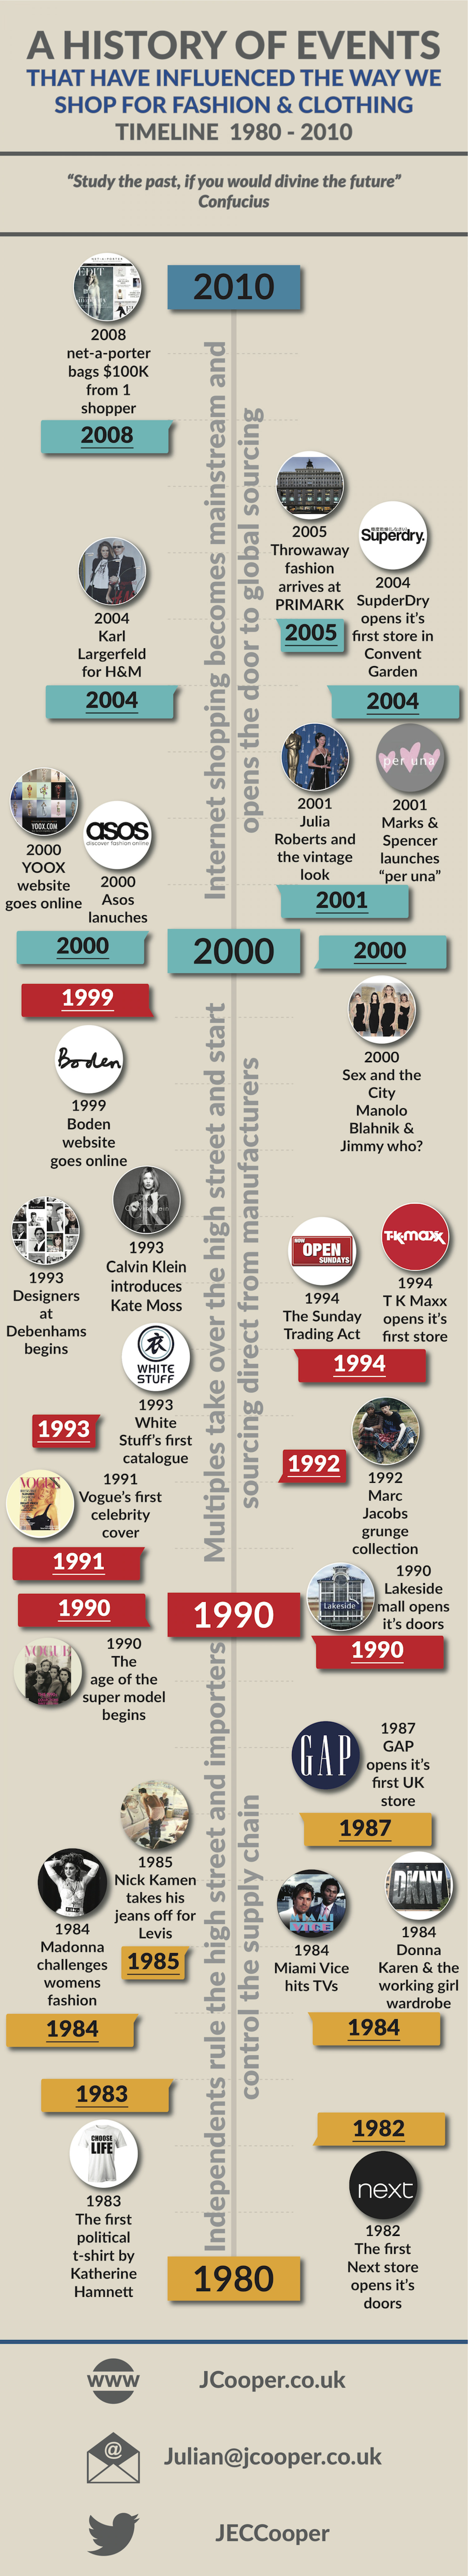 High Street Fashion Influences 1980-2010 Infographic